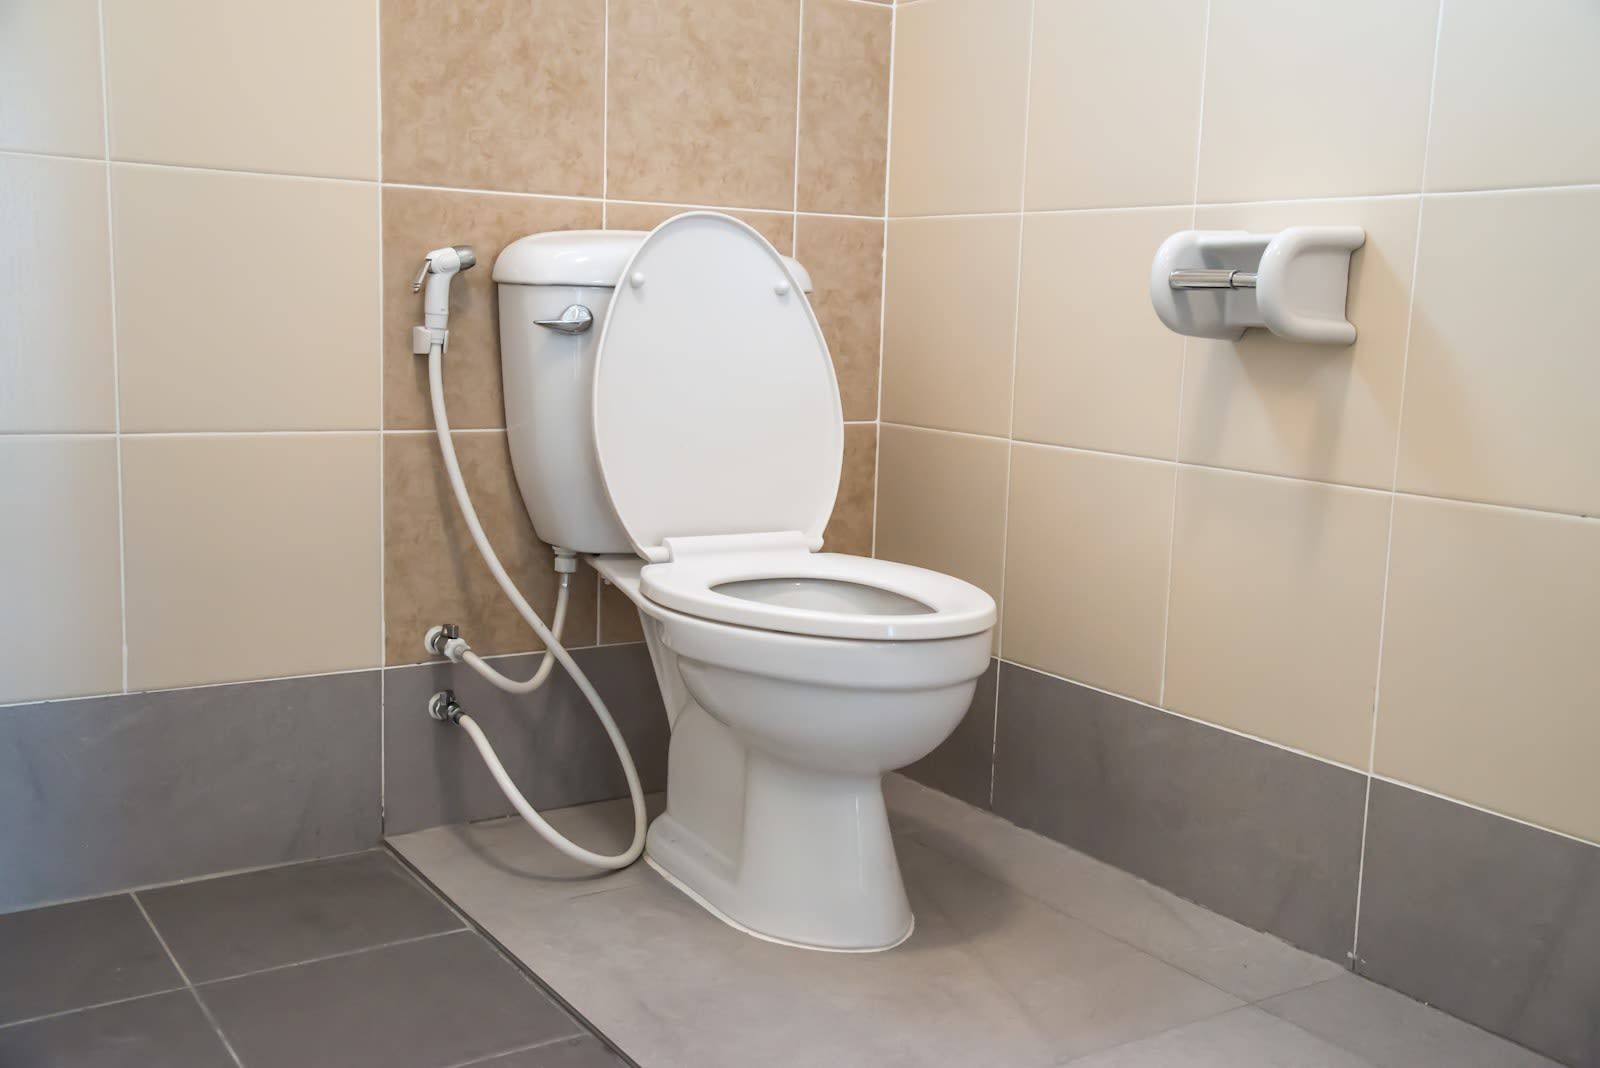 Google and India's government will launch a toilet finder